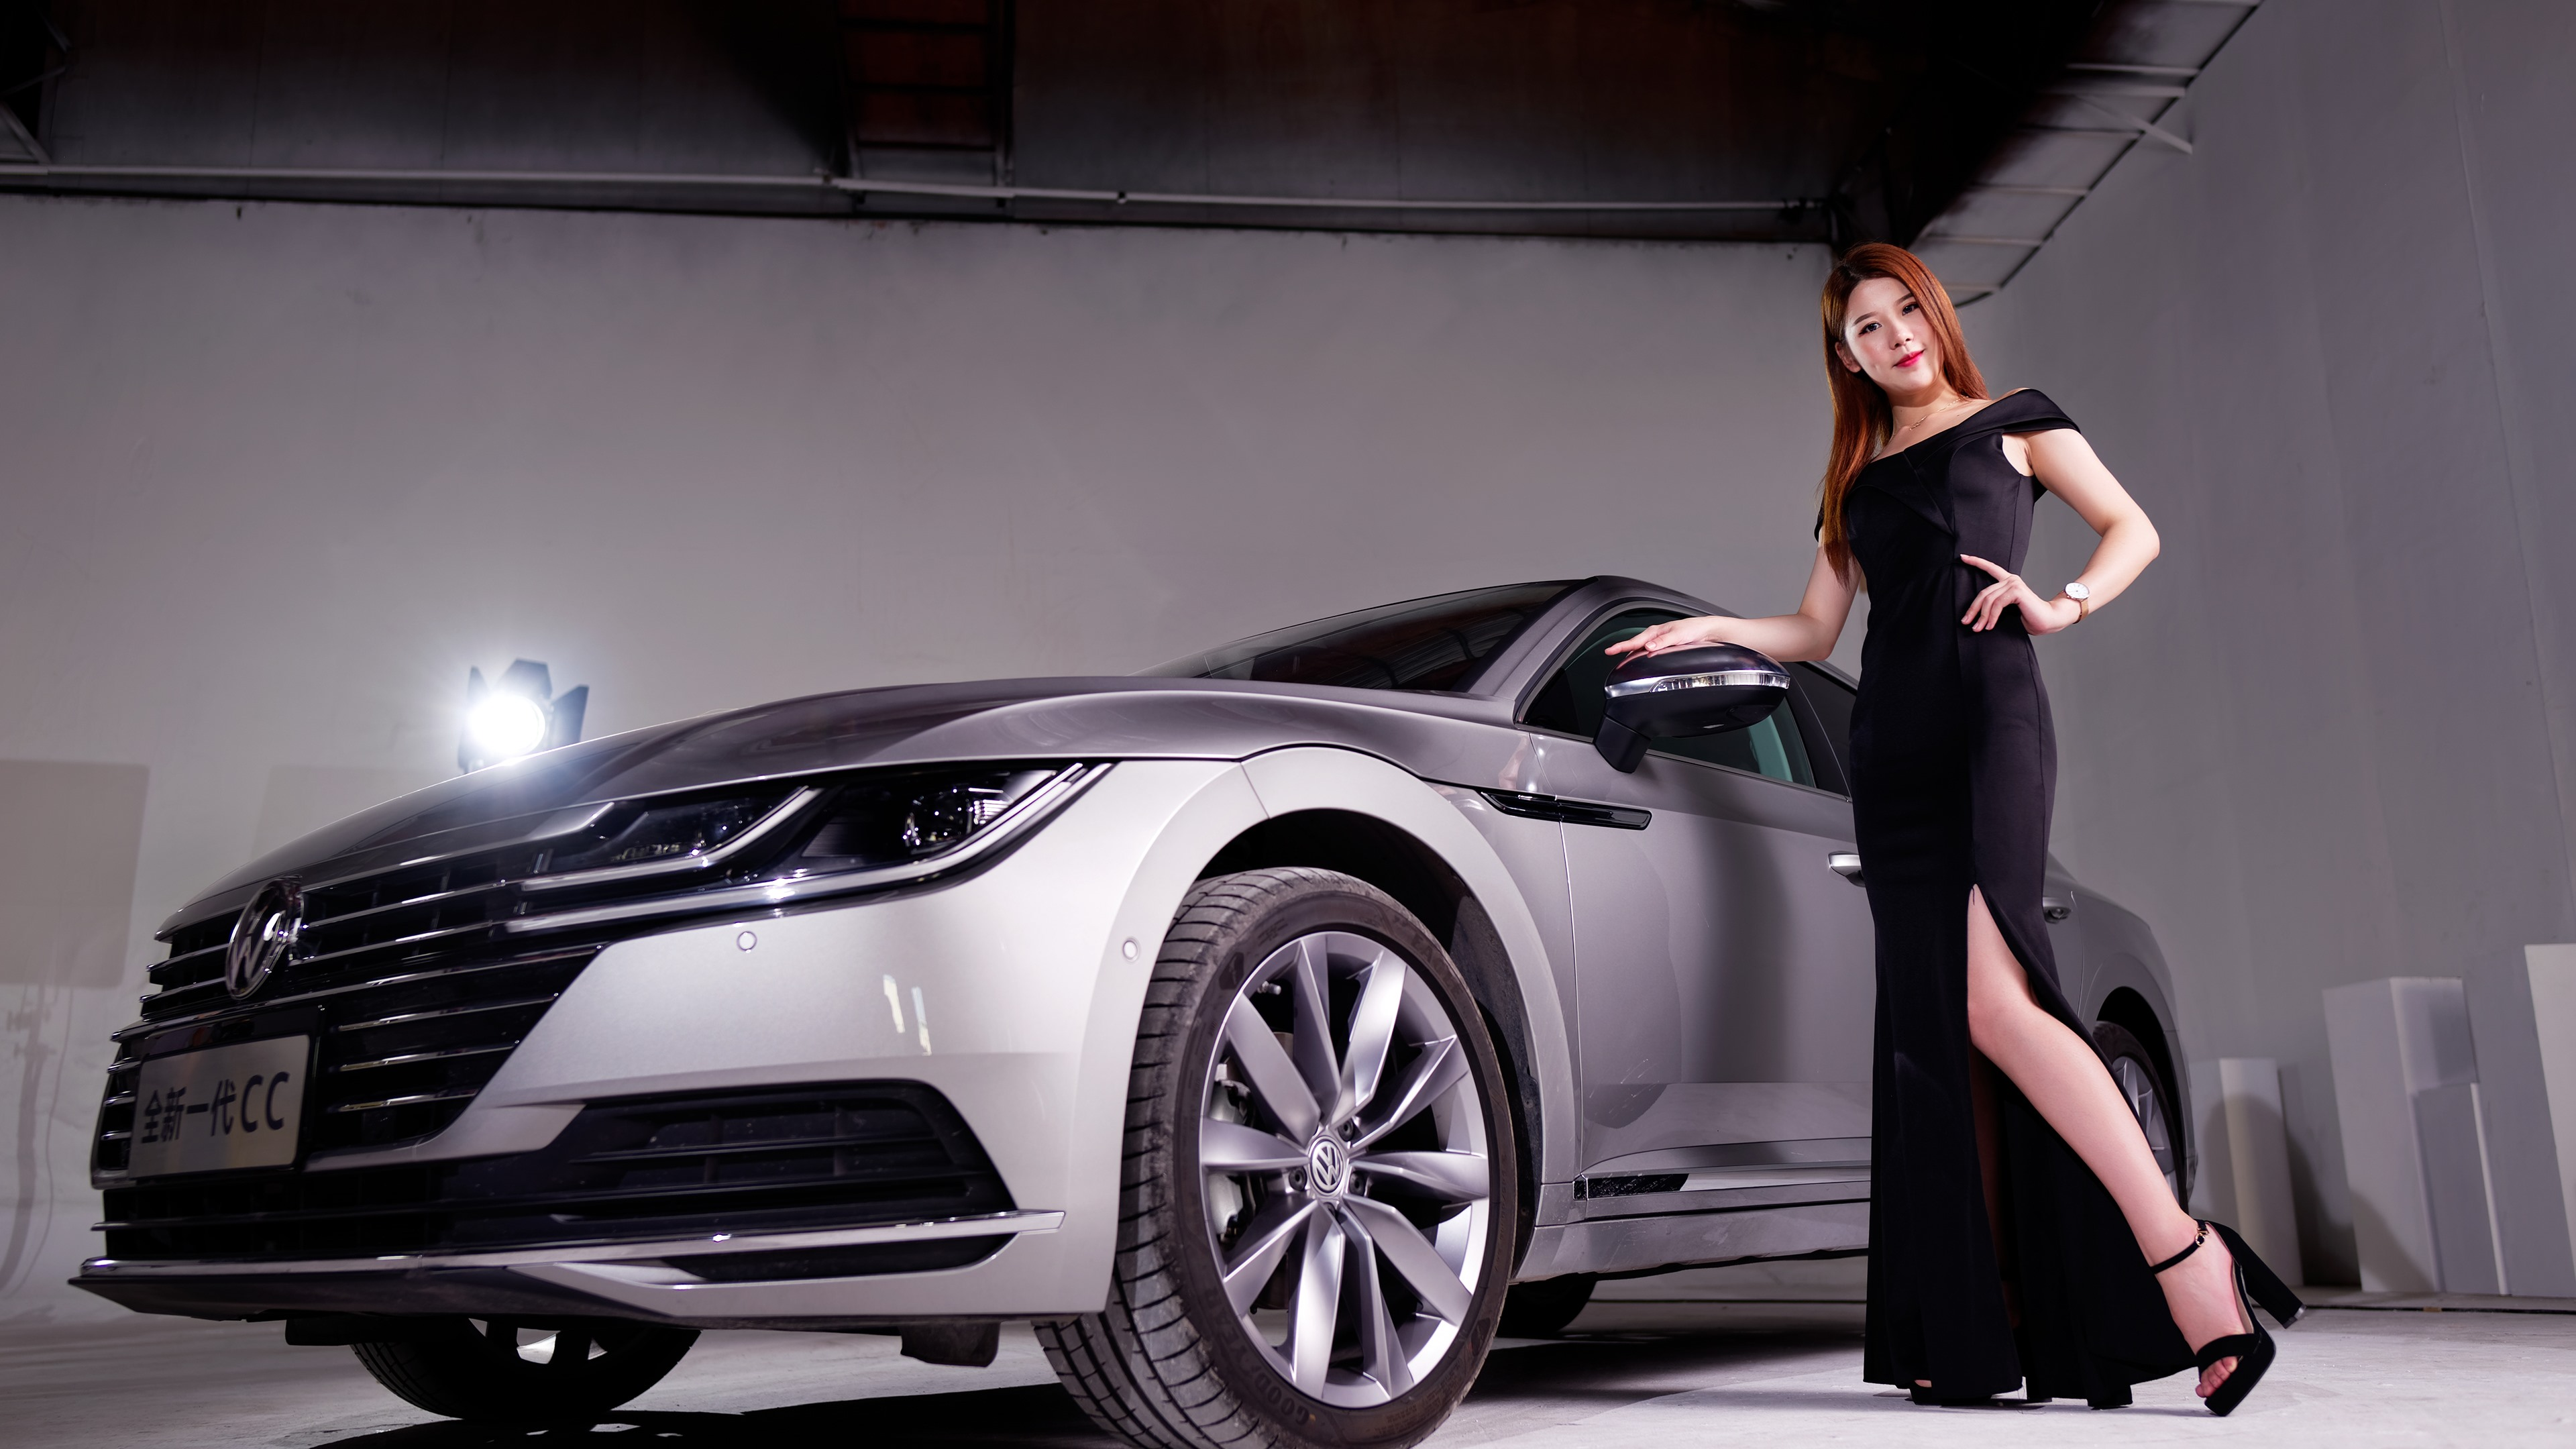 Wallpaper Volkswagen Silver Car Black Skirt Girl 3840x2160 Uhd 4k Picture Image